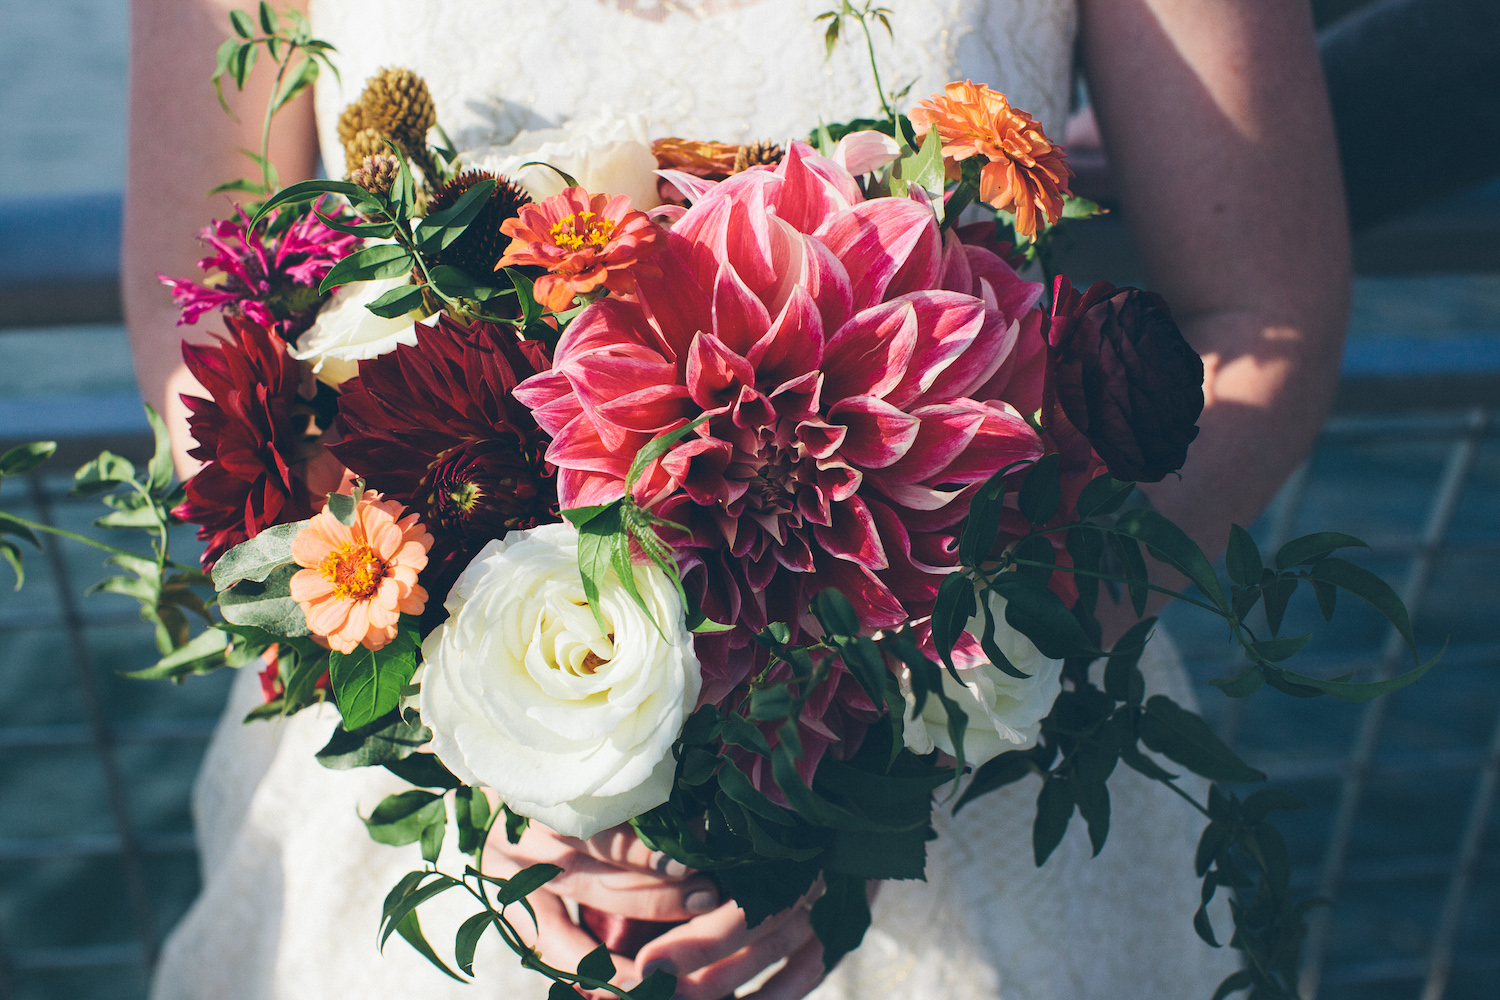 Full Aperture Floral & Corey Torpie Photography  - Brooklyn Wedding - 44.jpeg